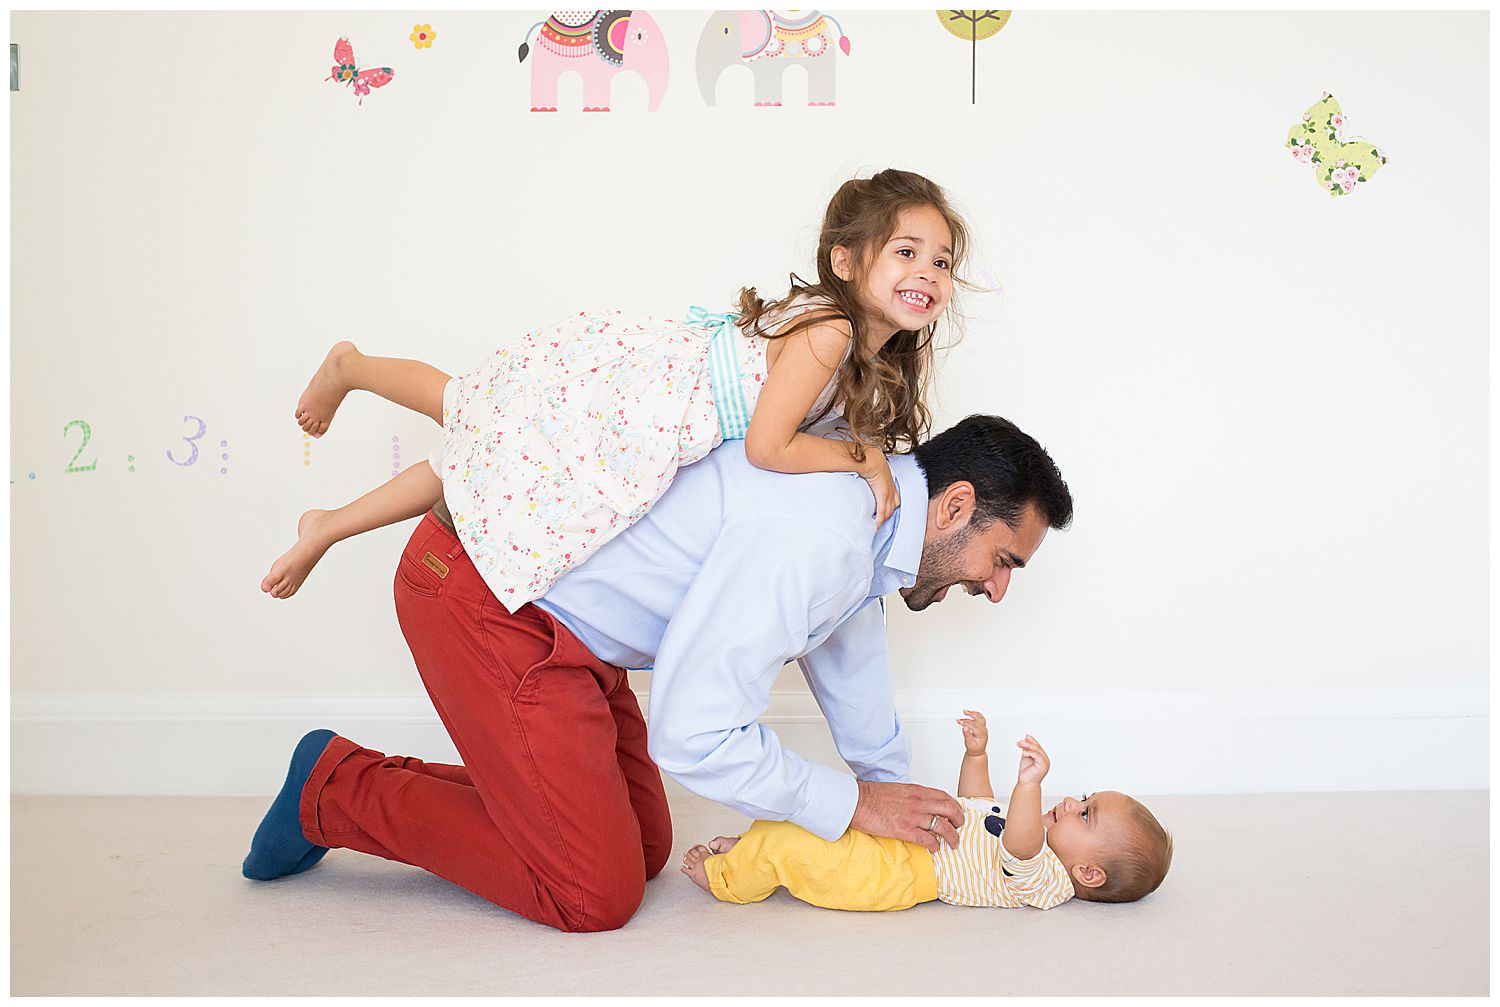 4 year old on dad's back & baby on floor